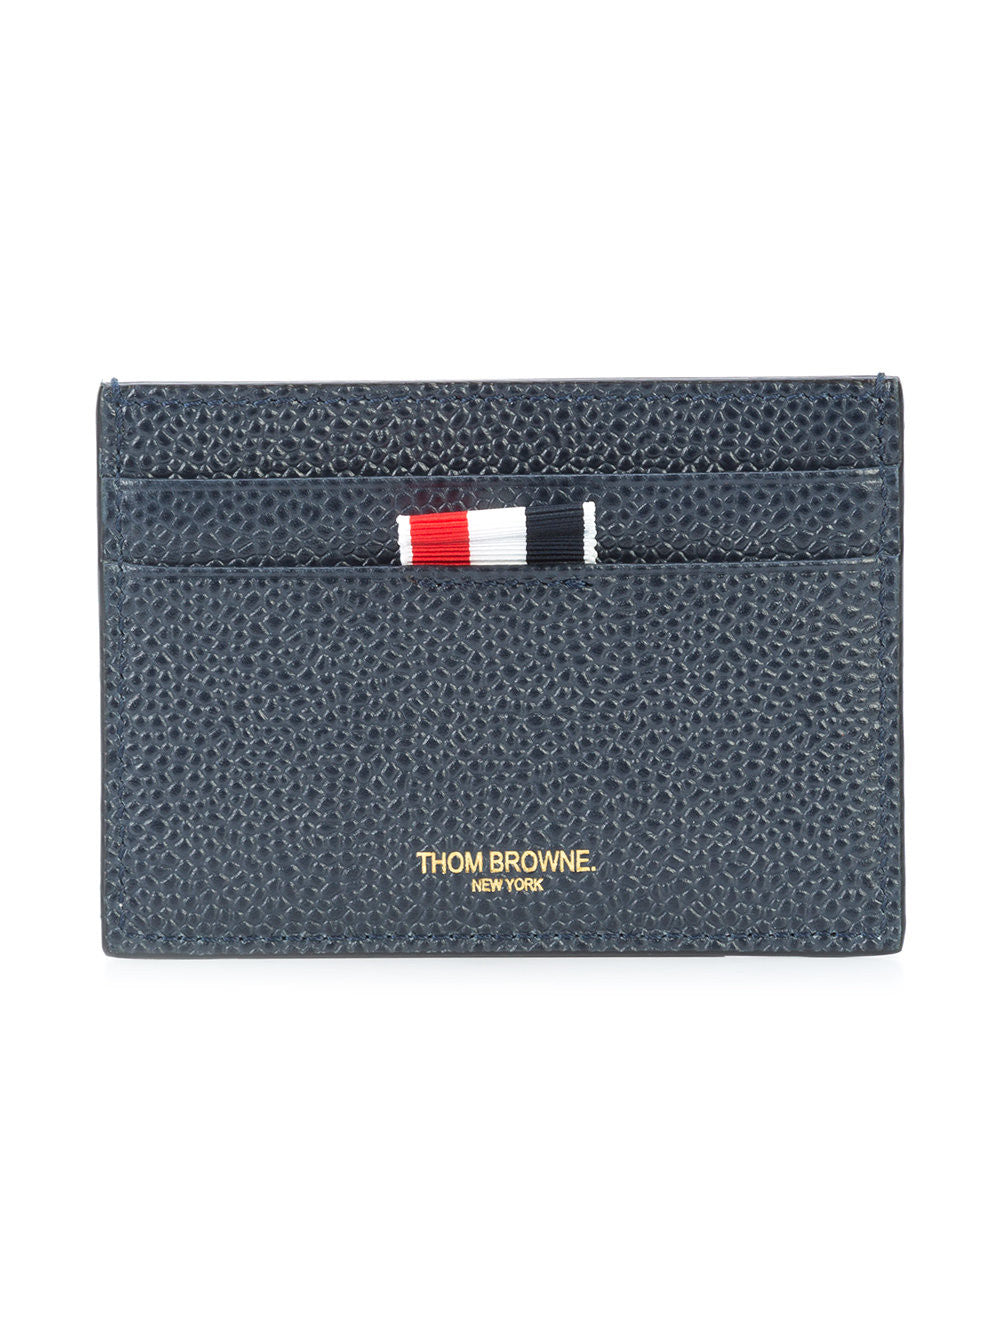 Striped Cardholder | MAW057A-00198-996